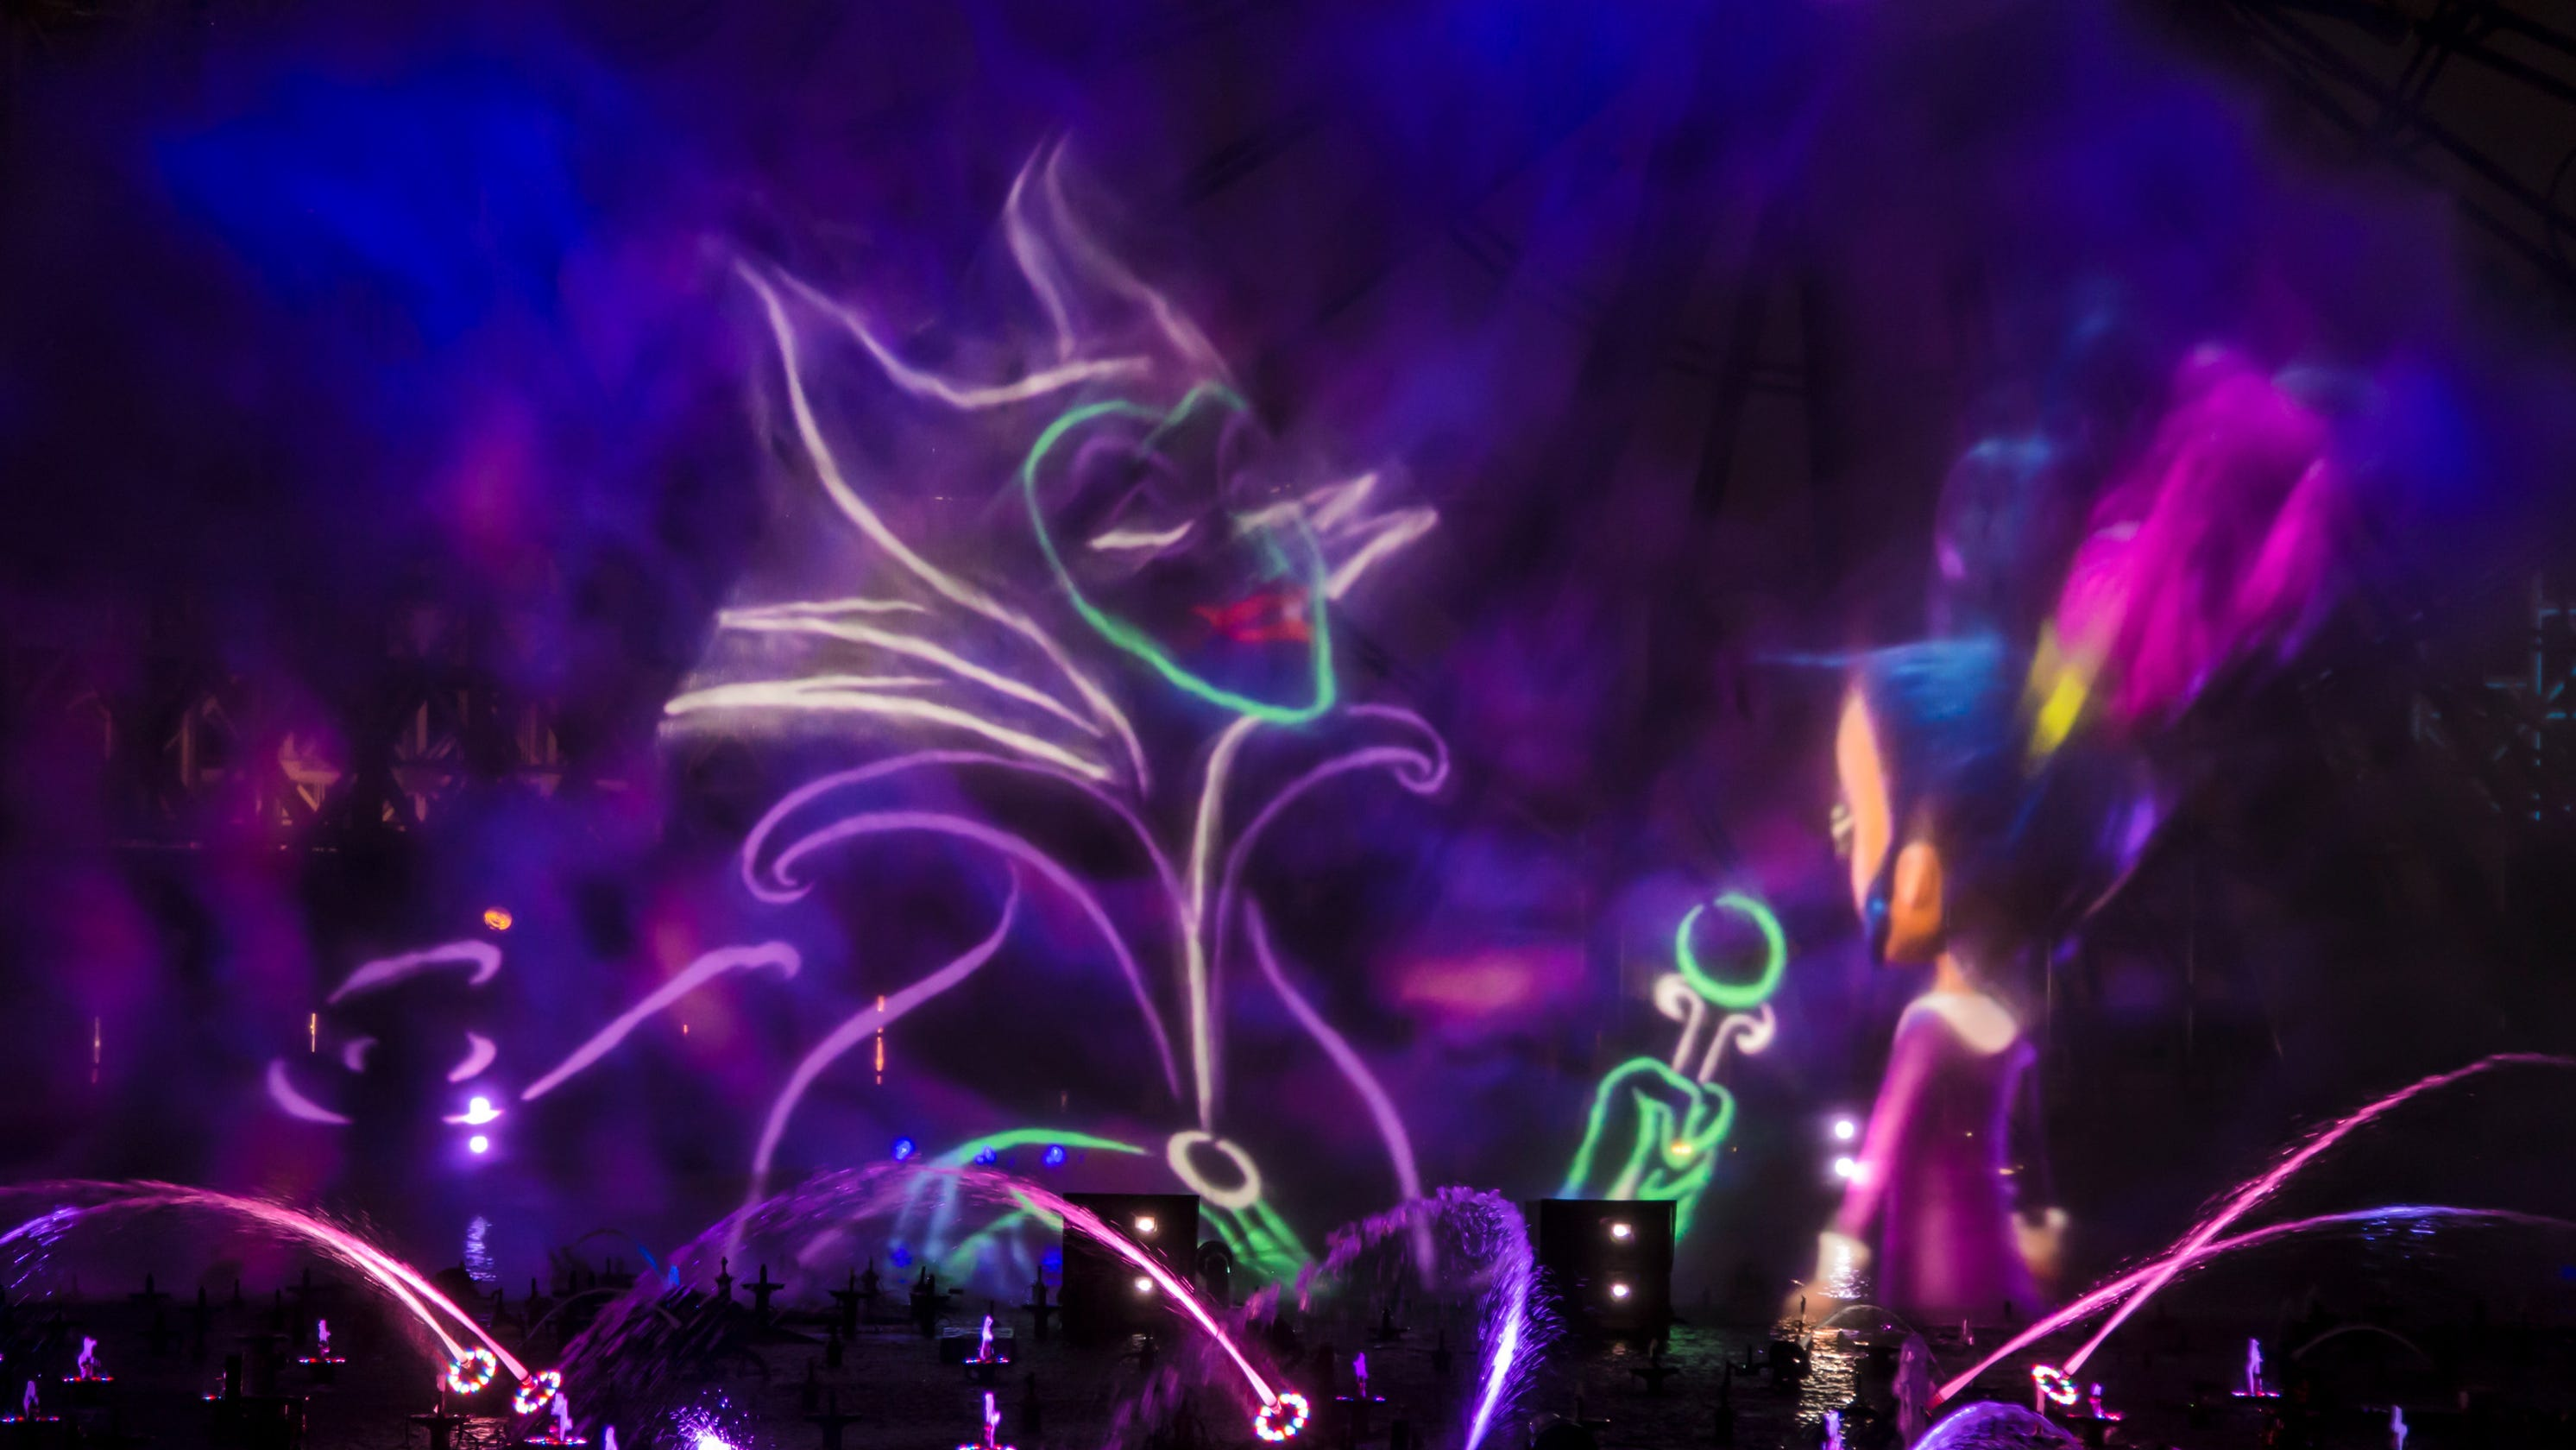 Oogie Boogie Halloween Party.Disney To Debut New Character At Oogie Boogie Bash